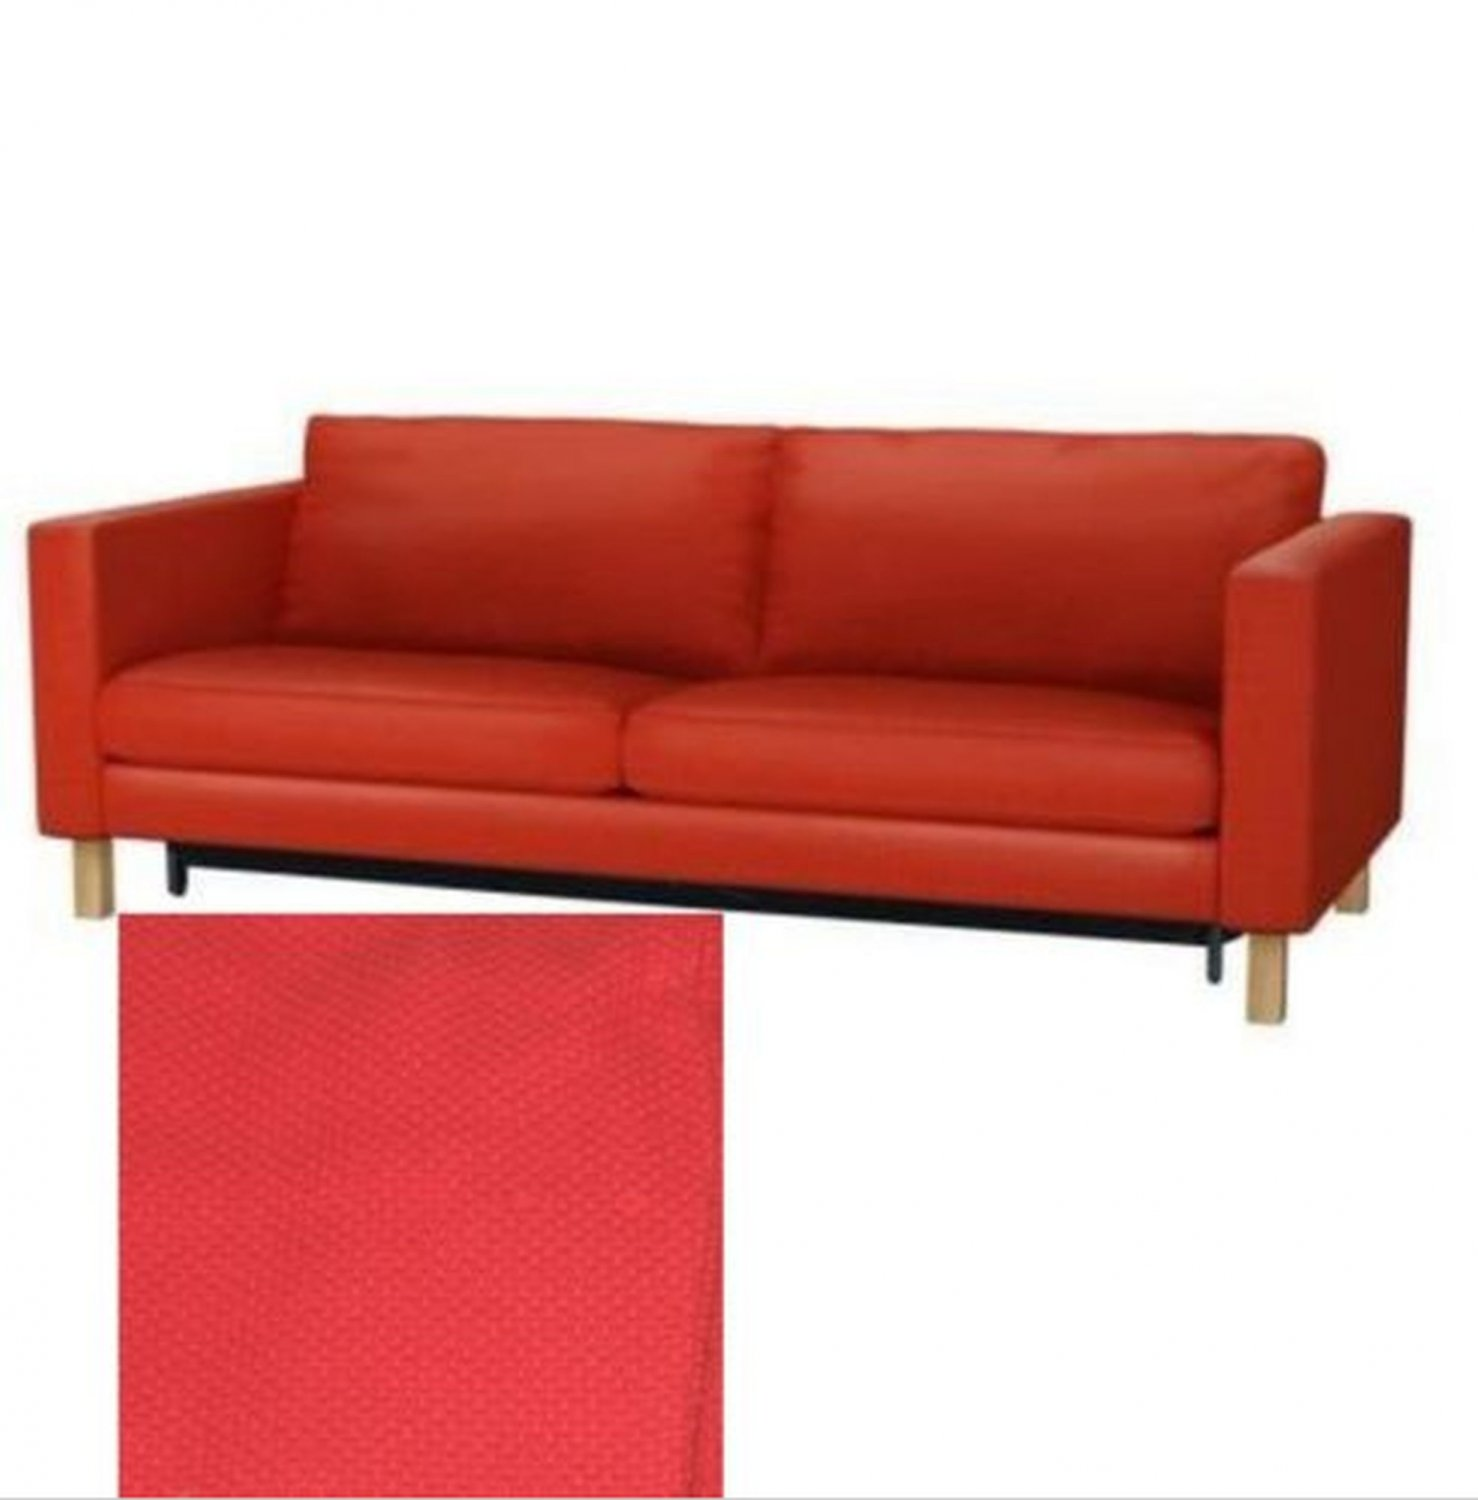 ikea karlstad sofa bed sofabed slipcover cover korndal red. Black Bedroom Furniture Sets. Home Design Ideas